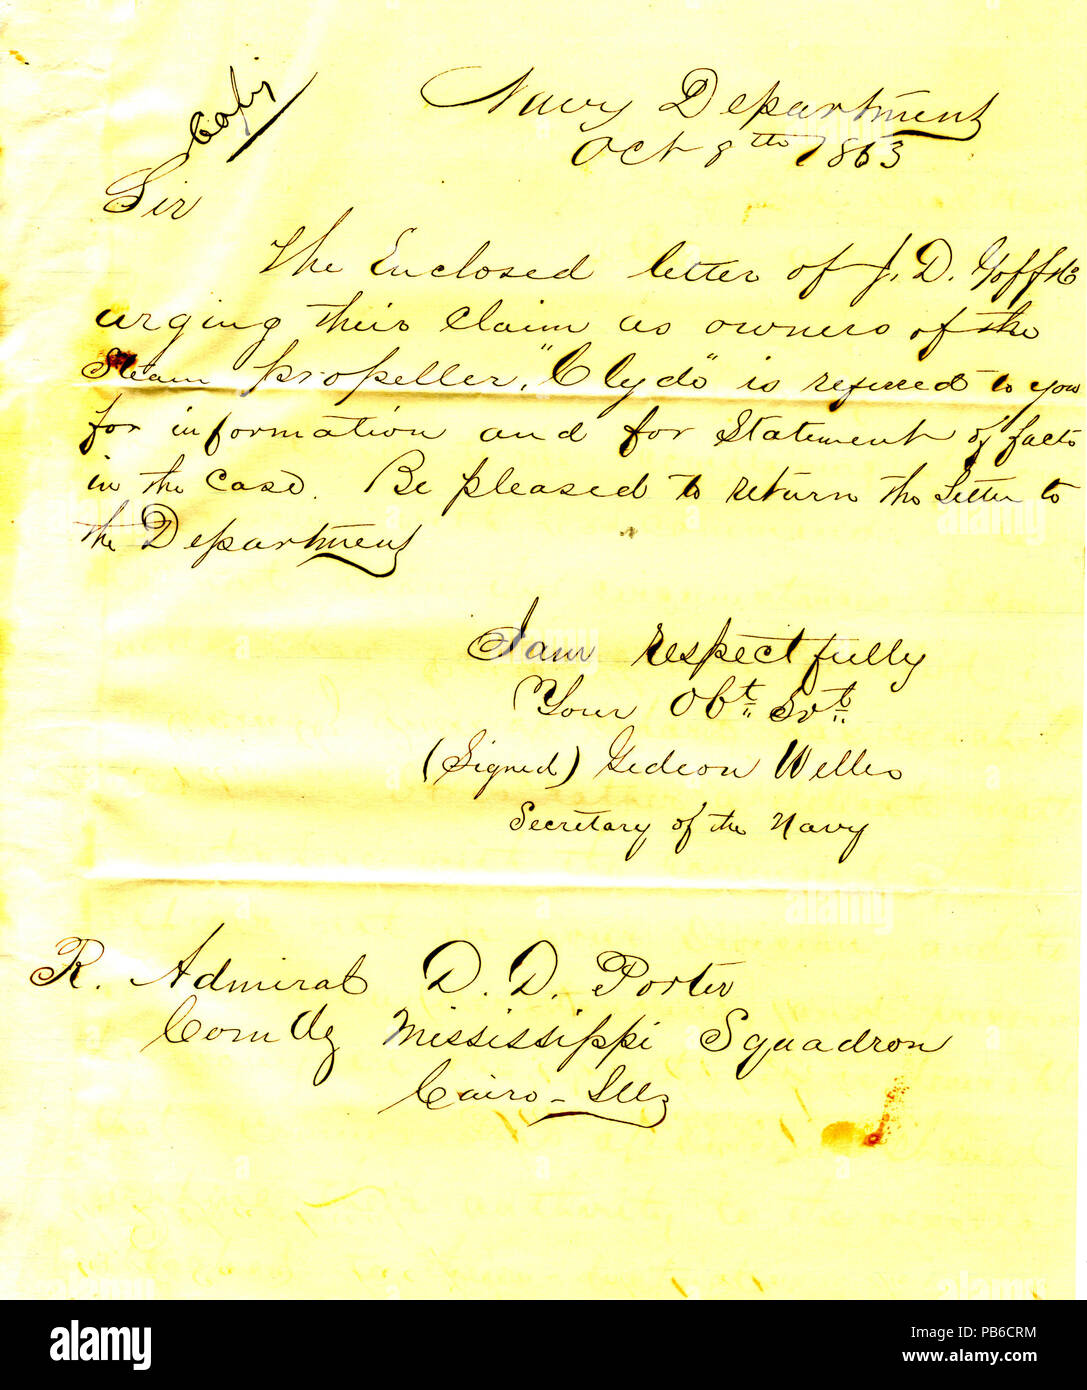 901 Letter from Gideon Welles, secretary of the navy, to David D. Porter, Cairo, Illinois, October 8, 1863 - Stock Image